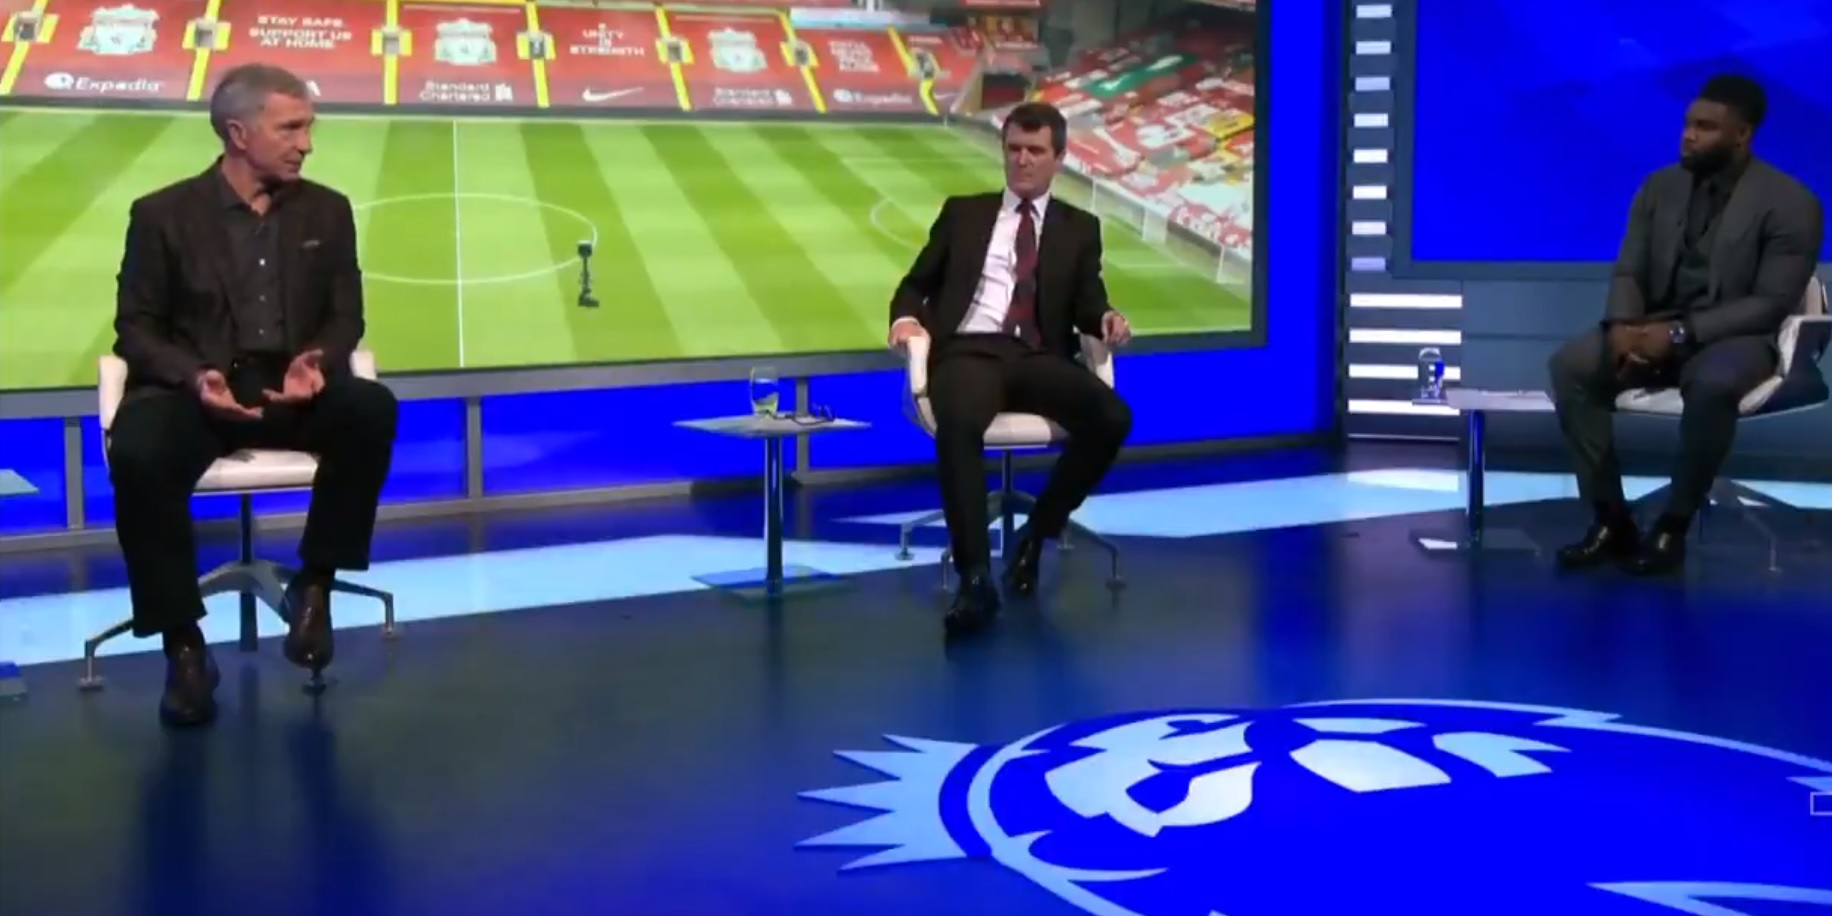 (Video) 'Liverpool have got nothing' – Souness insists it's City's title to lose; Richards refuses to rule LFC out